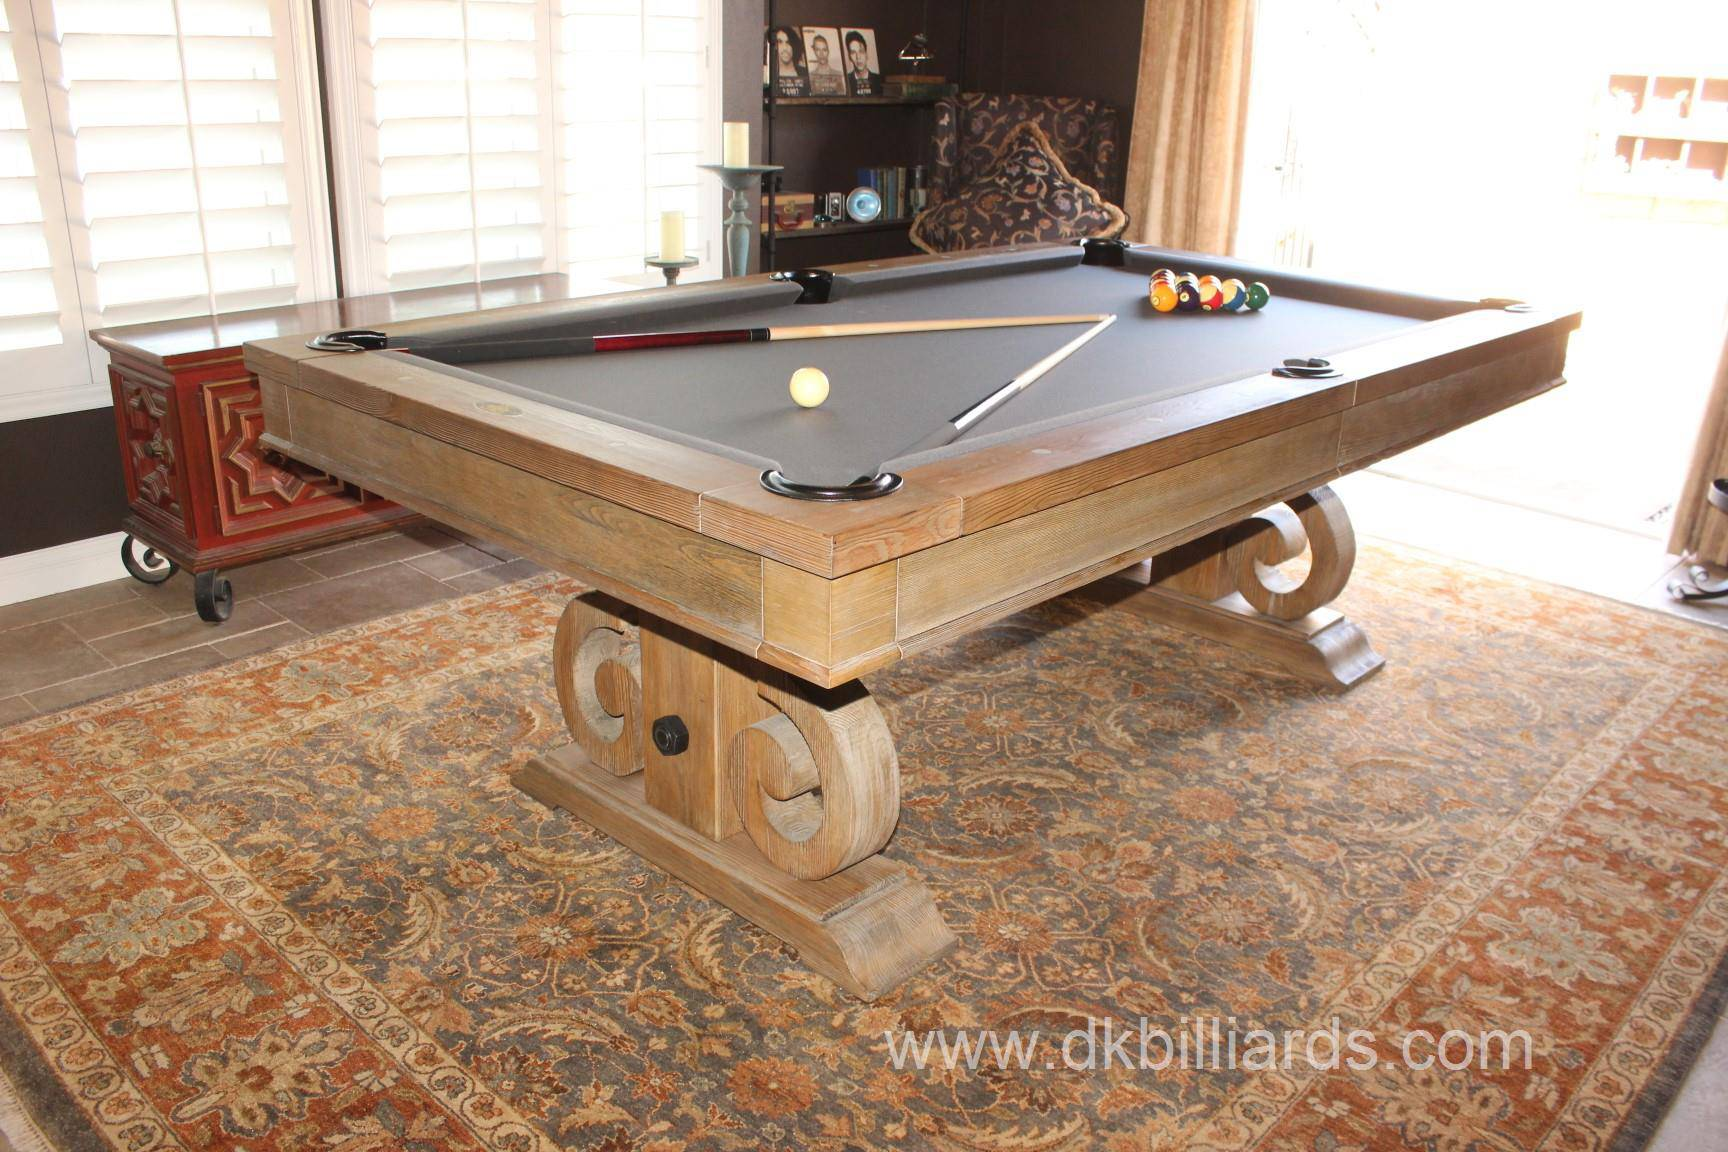 ... Davenport Rustic Dining Conversion Pool Table With Charcoal Felt We  Delivered To Yorba Linda, California. The Davenport Has An Artisan Style  Design With ...